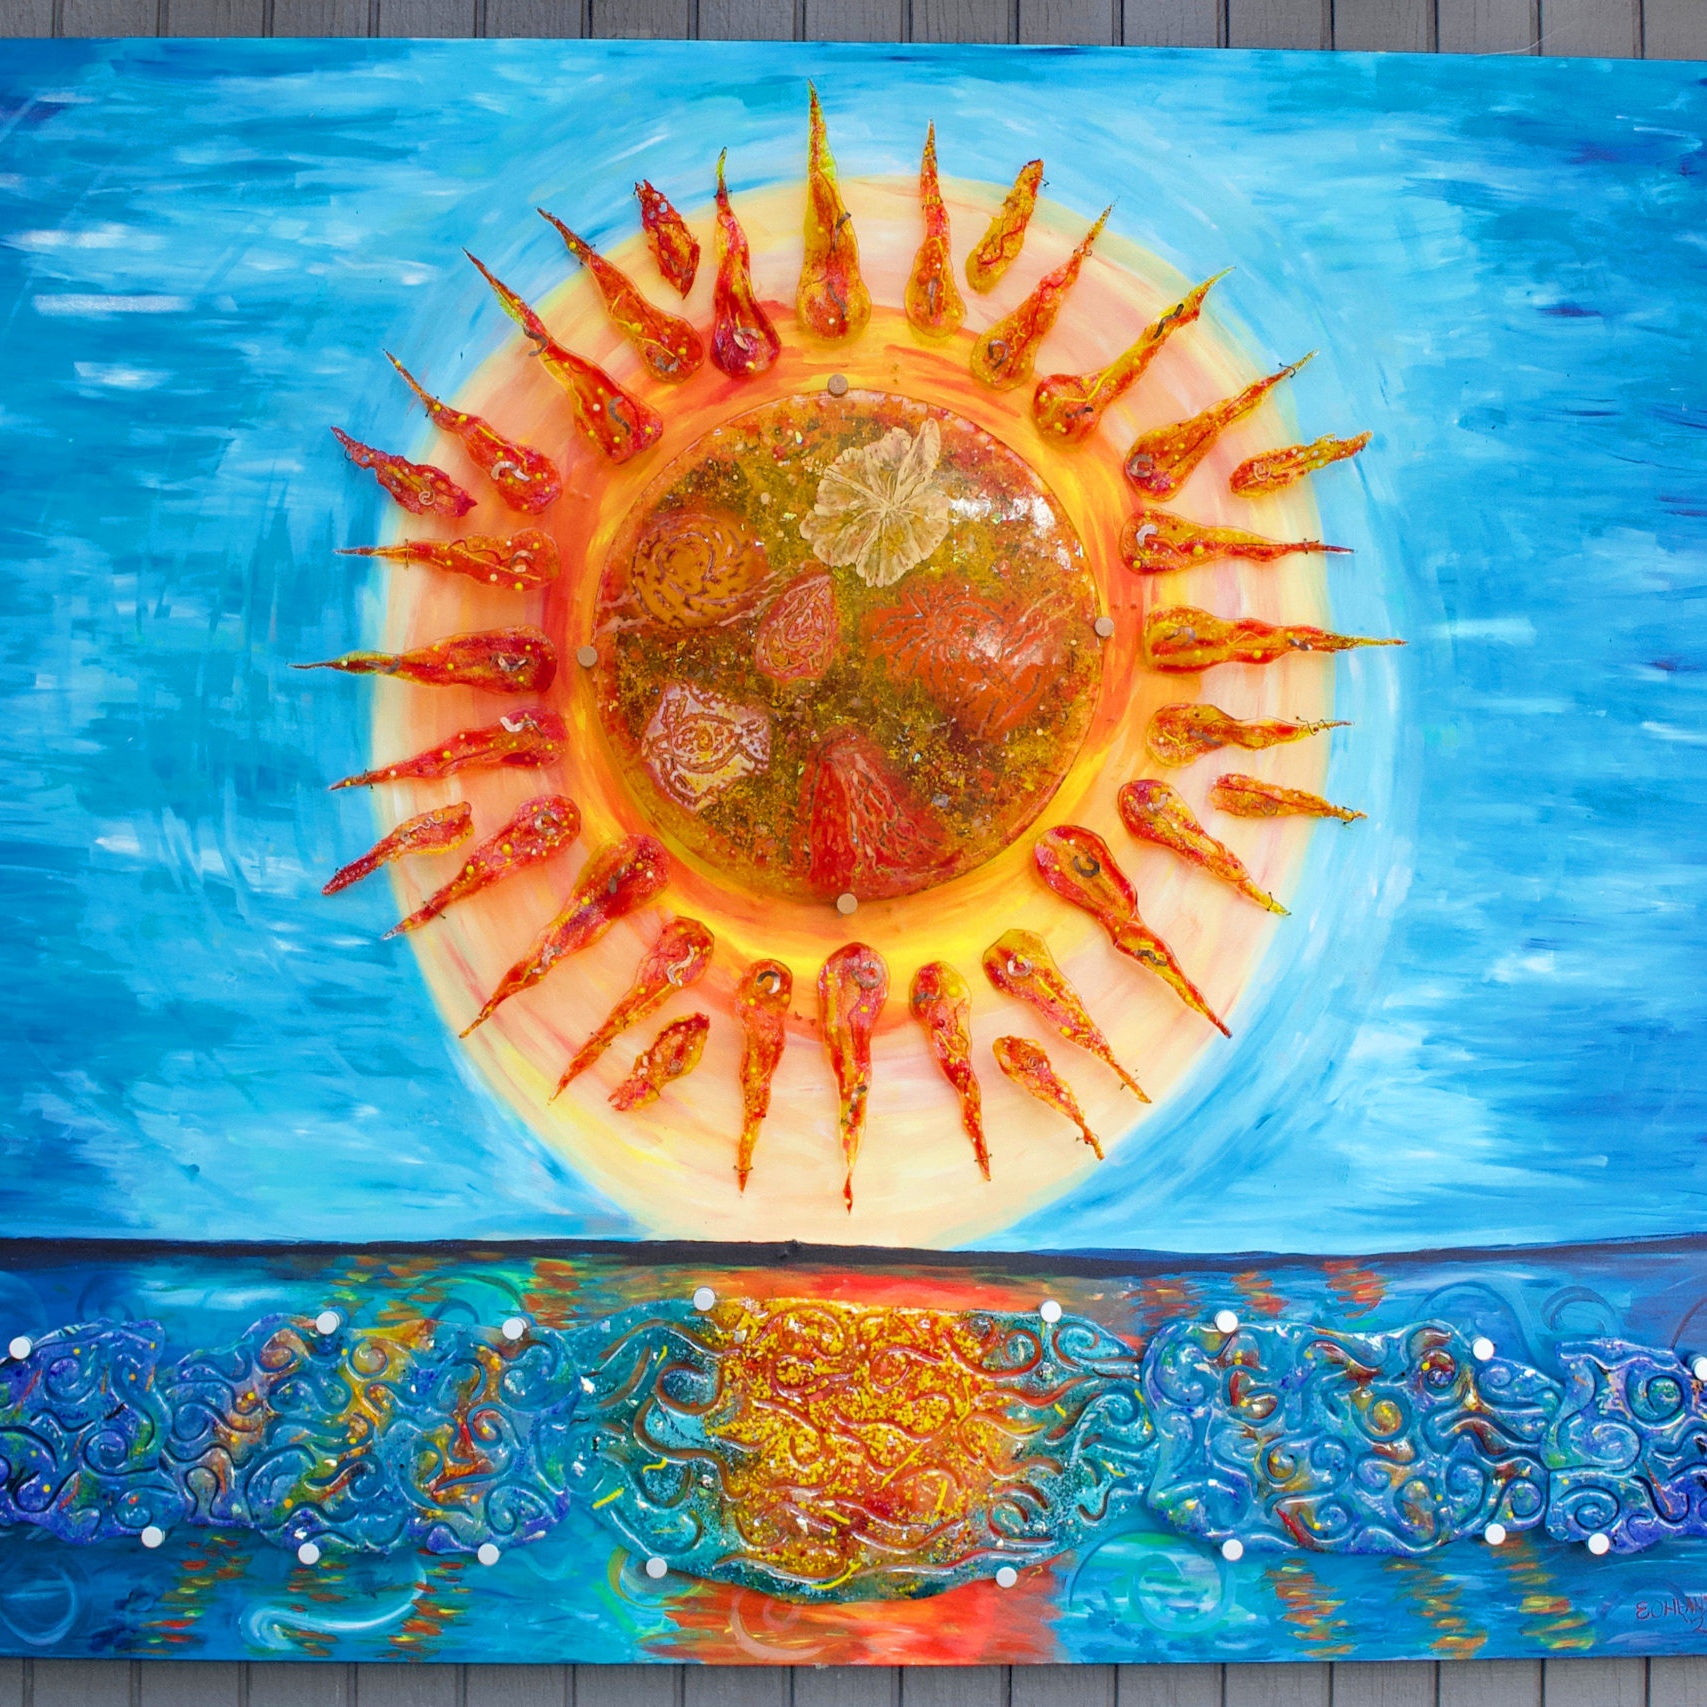 """56""""x72"""" multi media sunset. Large back lit at night sun with individual rays made out of fused glass and mounted on an mdf board painted with a coordinating mural. Water has 5 individual pieces of glass making up the texture. sky and water are in shades of cerulean blue fading to a cobalt blue, sun is orange red and yellow. Sun has images of turtle, palm tree, volcano, hibiscus and fish hook in the center"""